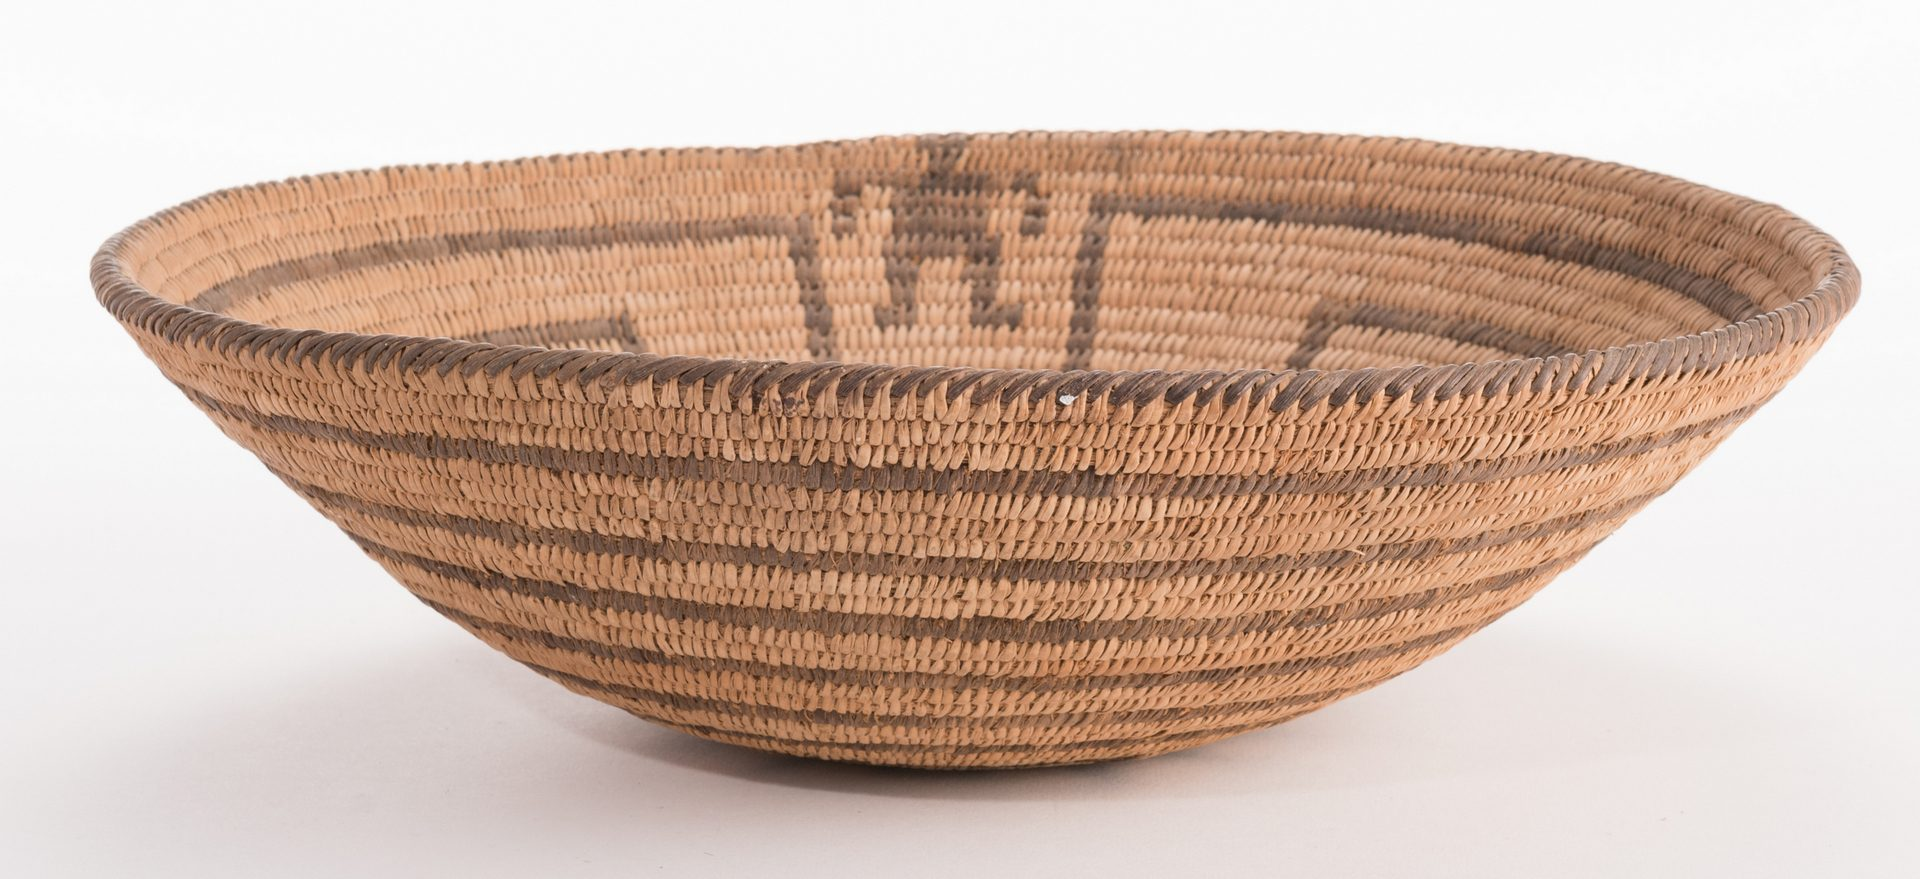 Lot 386: Pima Tray Basket, Man in the Maze Design